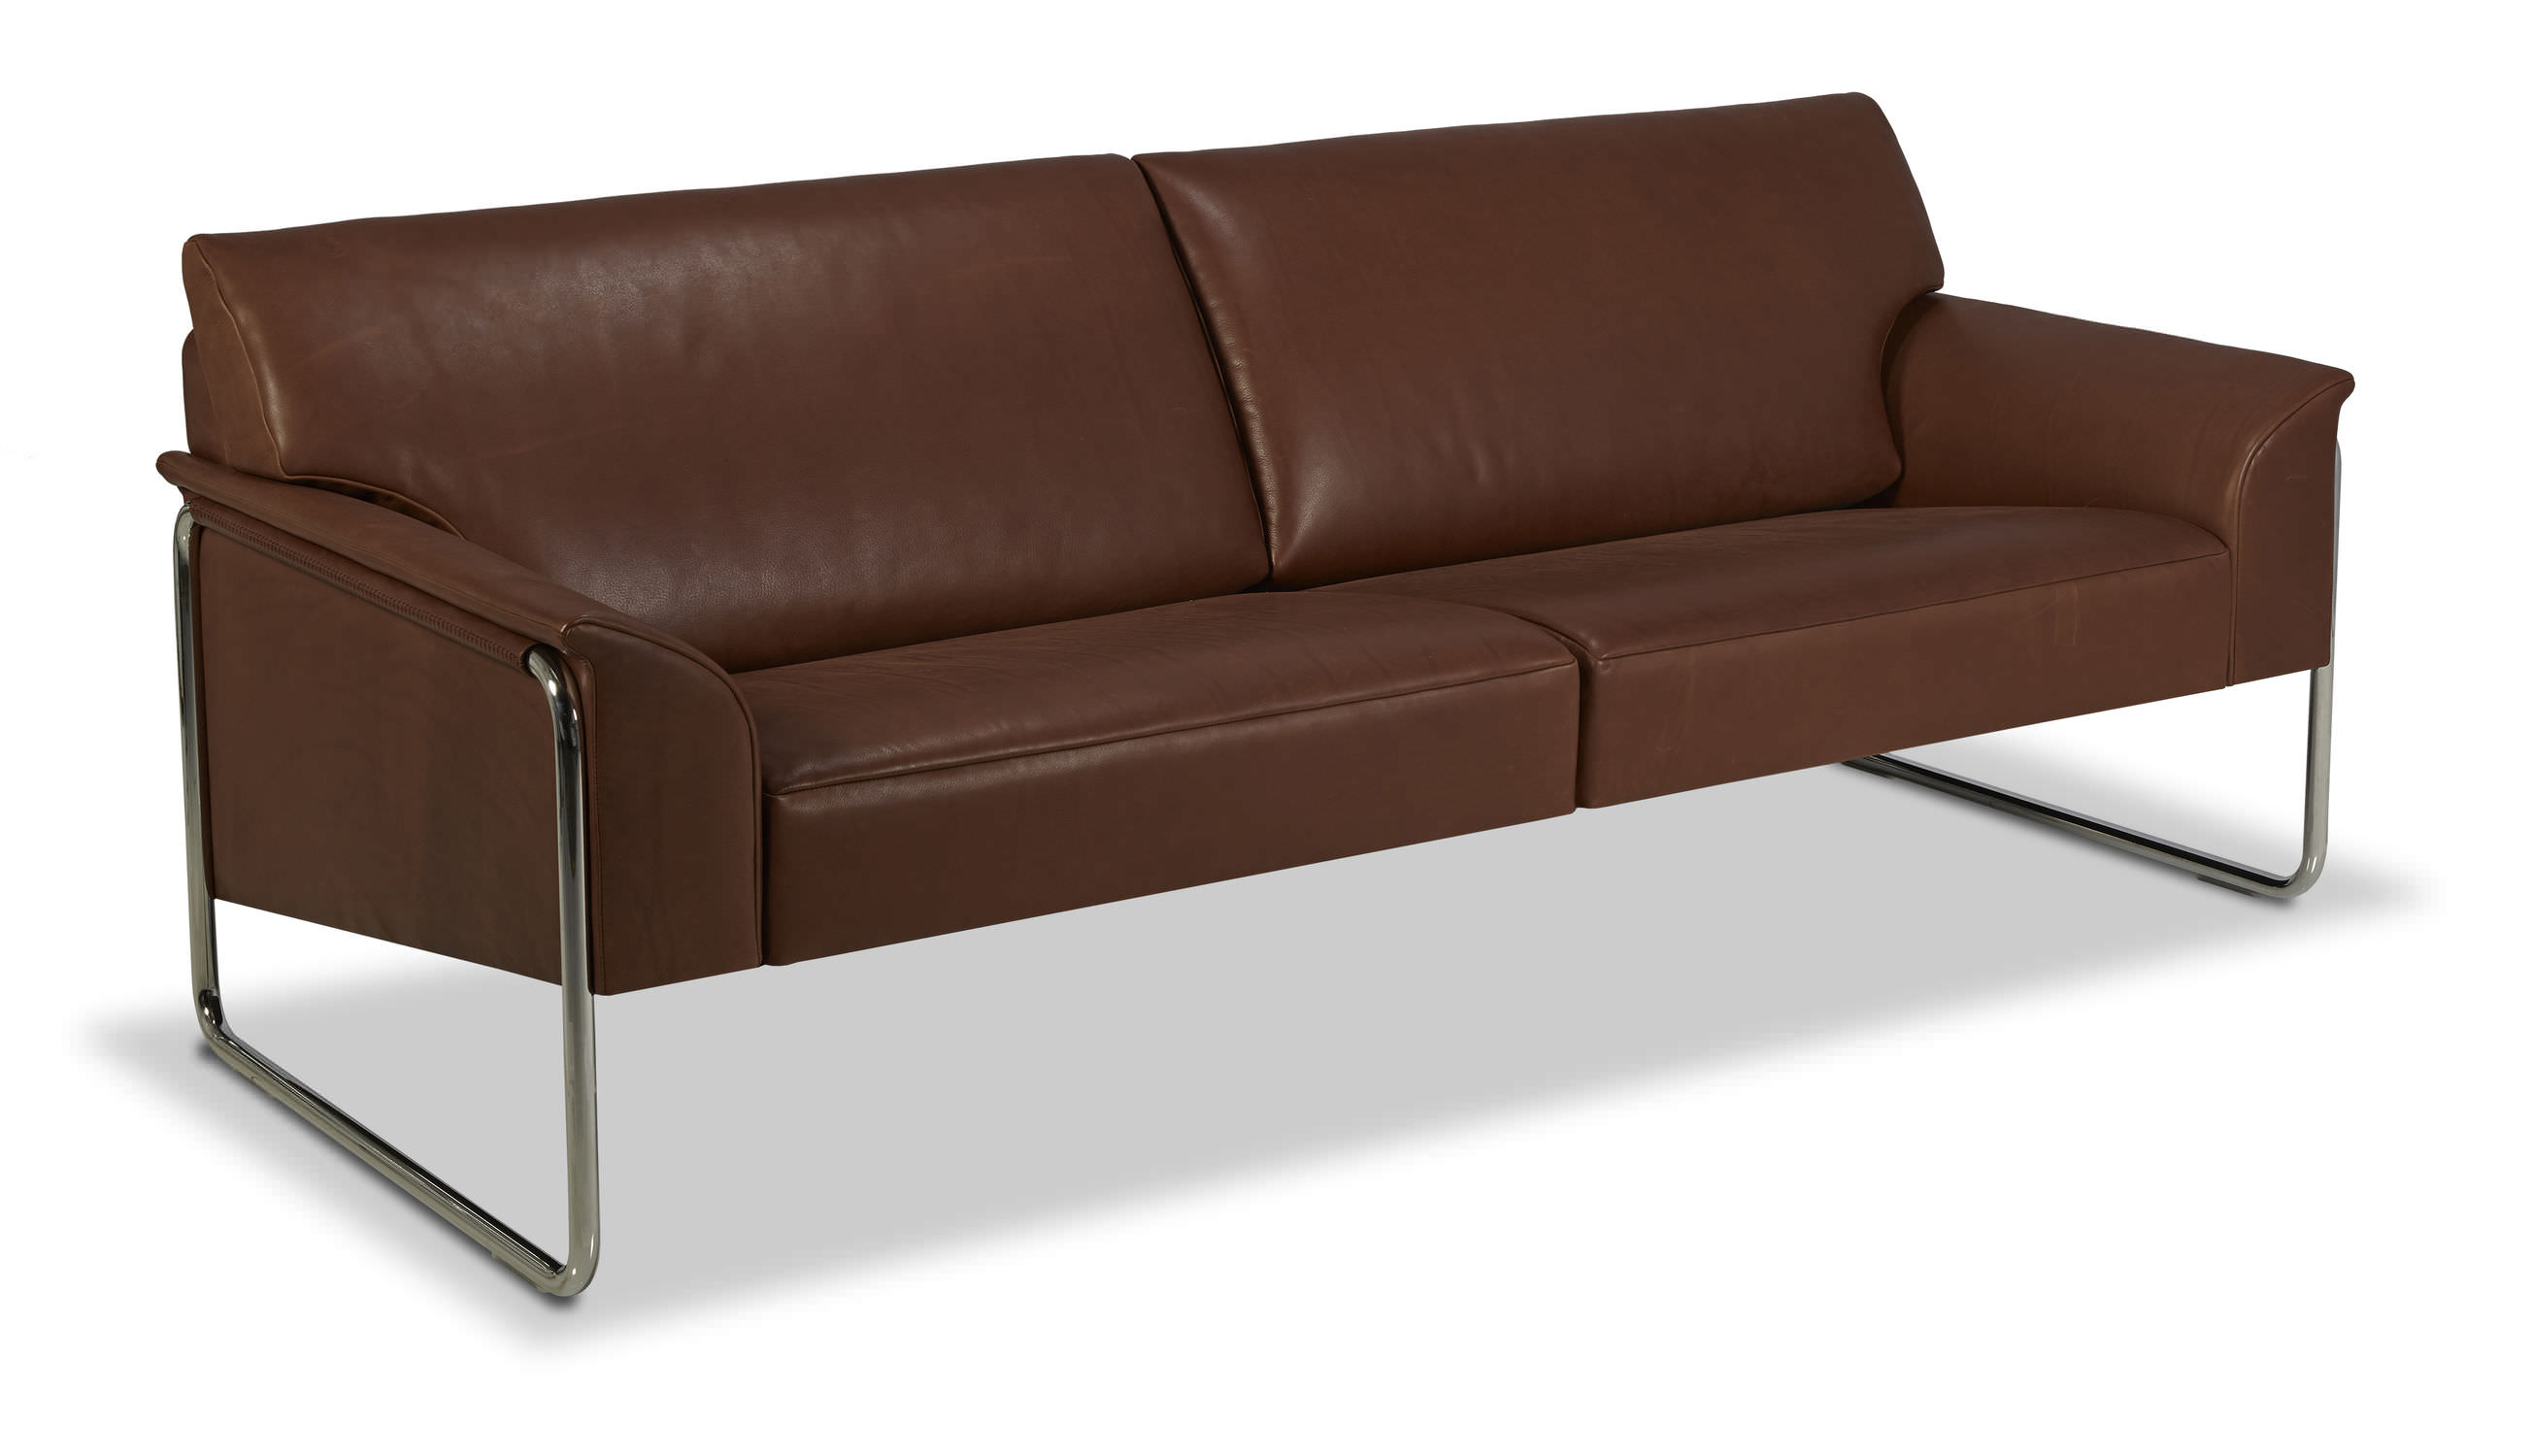 Contemporary sofa leather fabric 3 seater BELLINO by